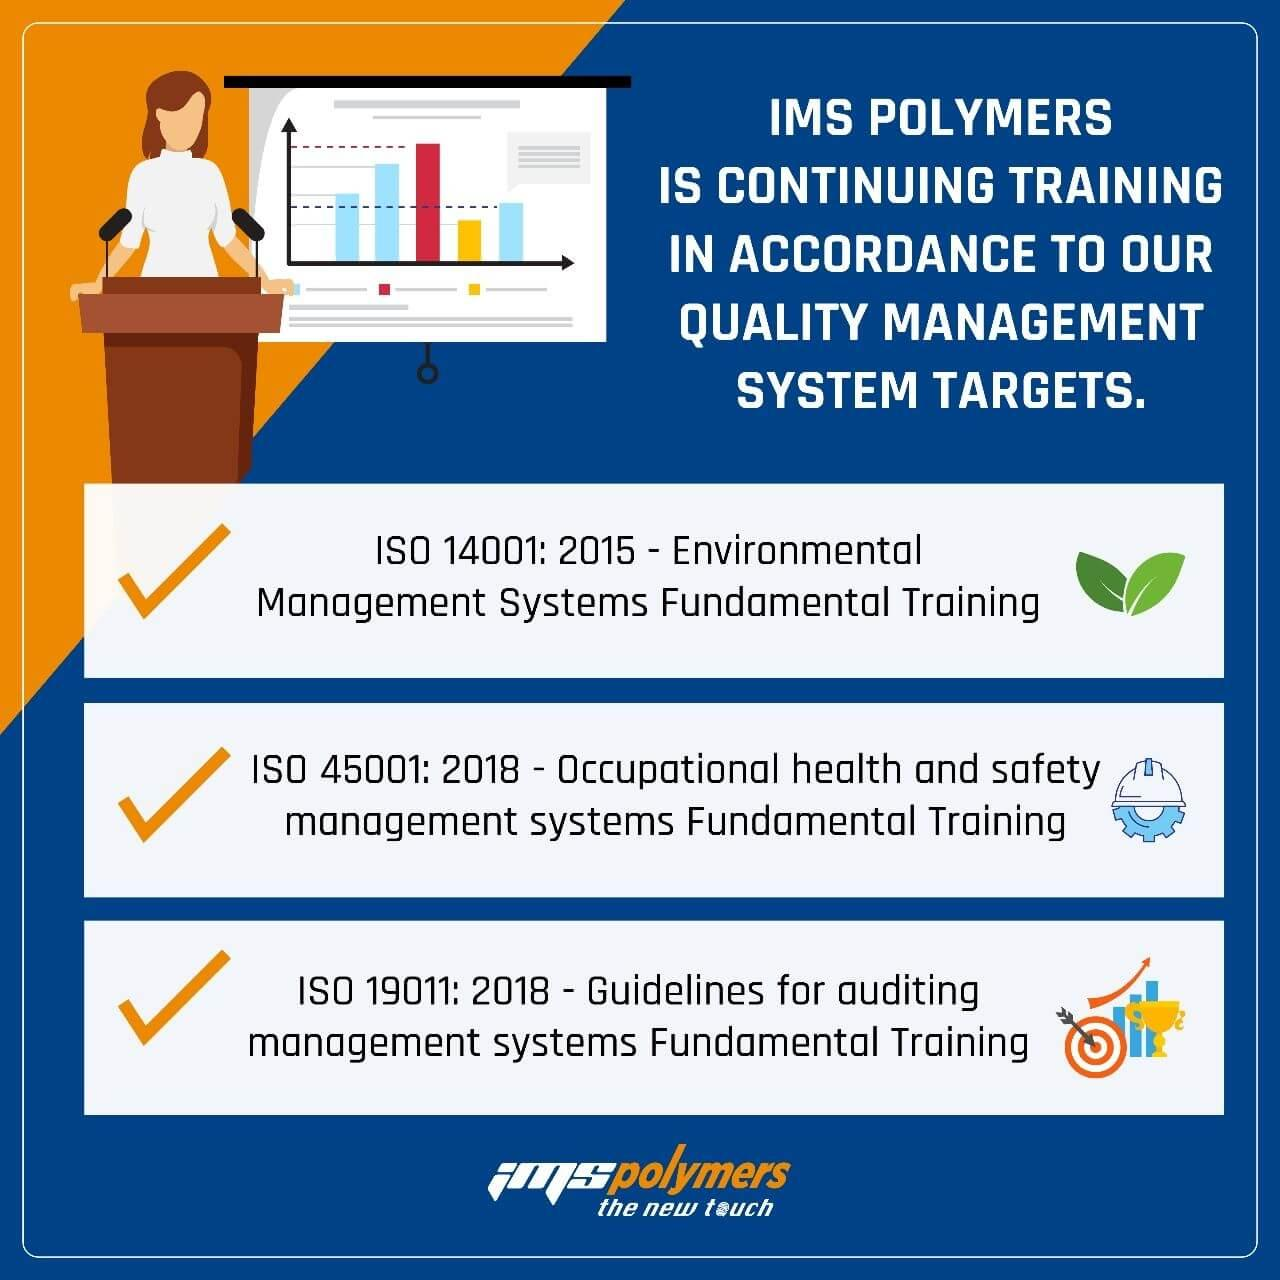 IMS Polymers is continuing training in accordance to our quality management system targets